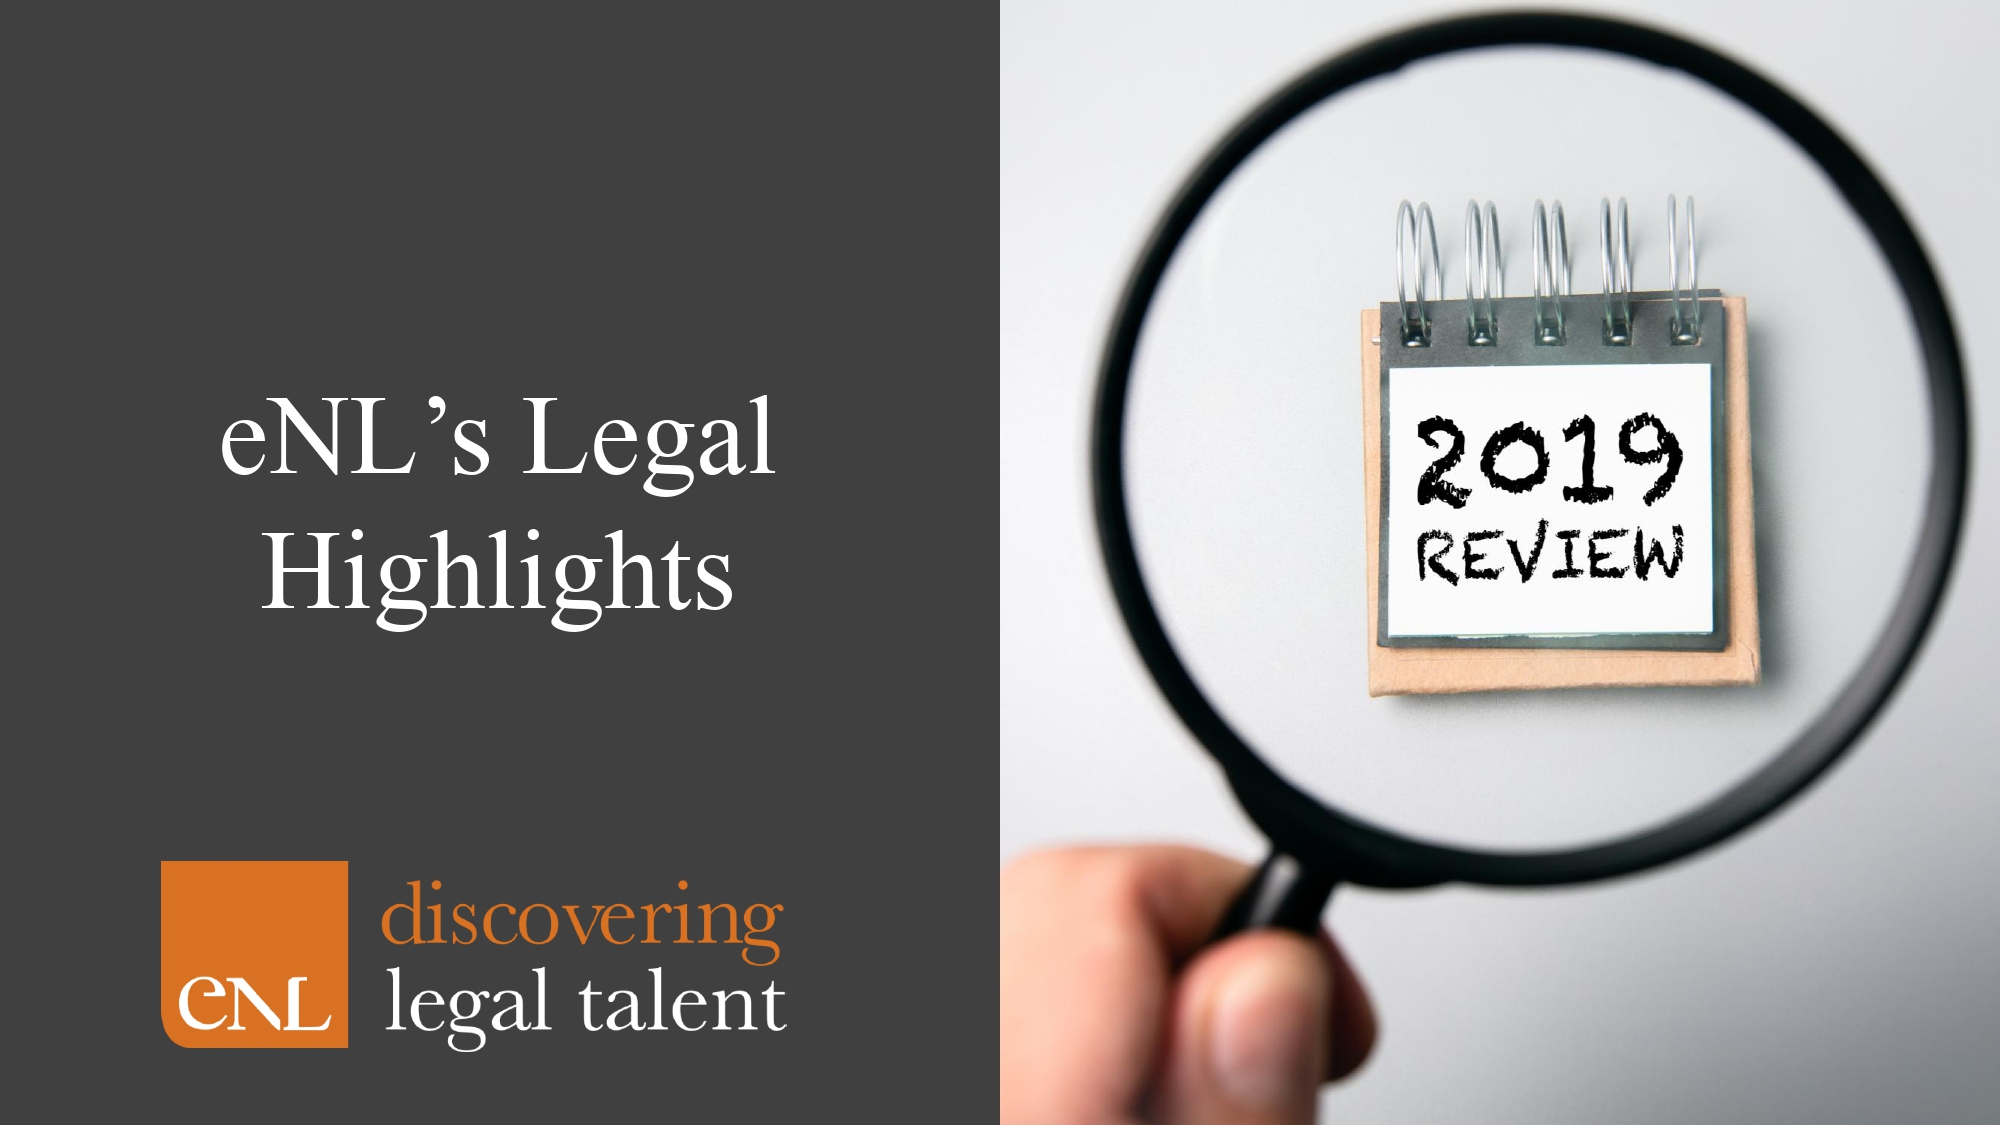 eNL's Legal Highlights Review of 2019